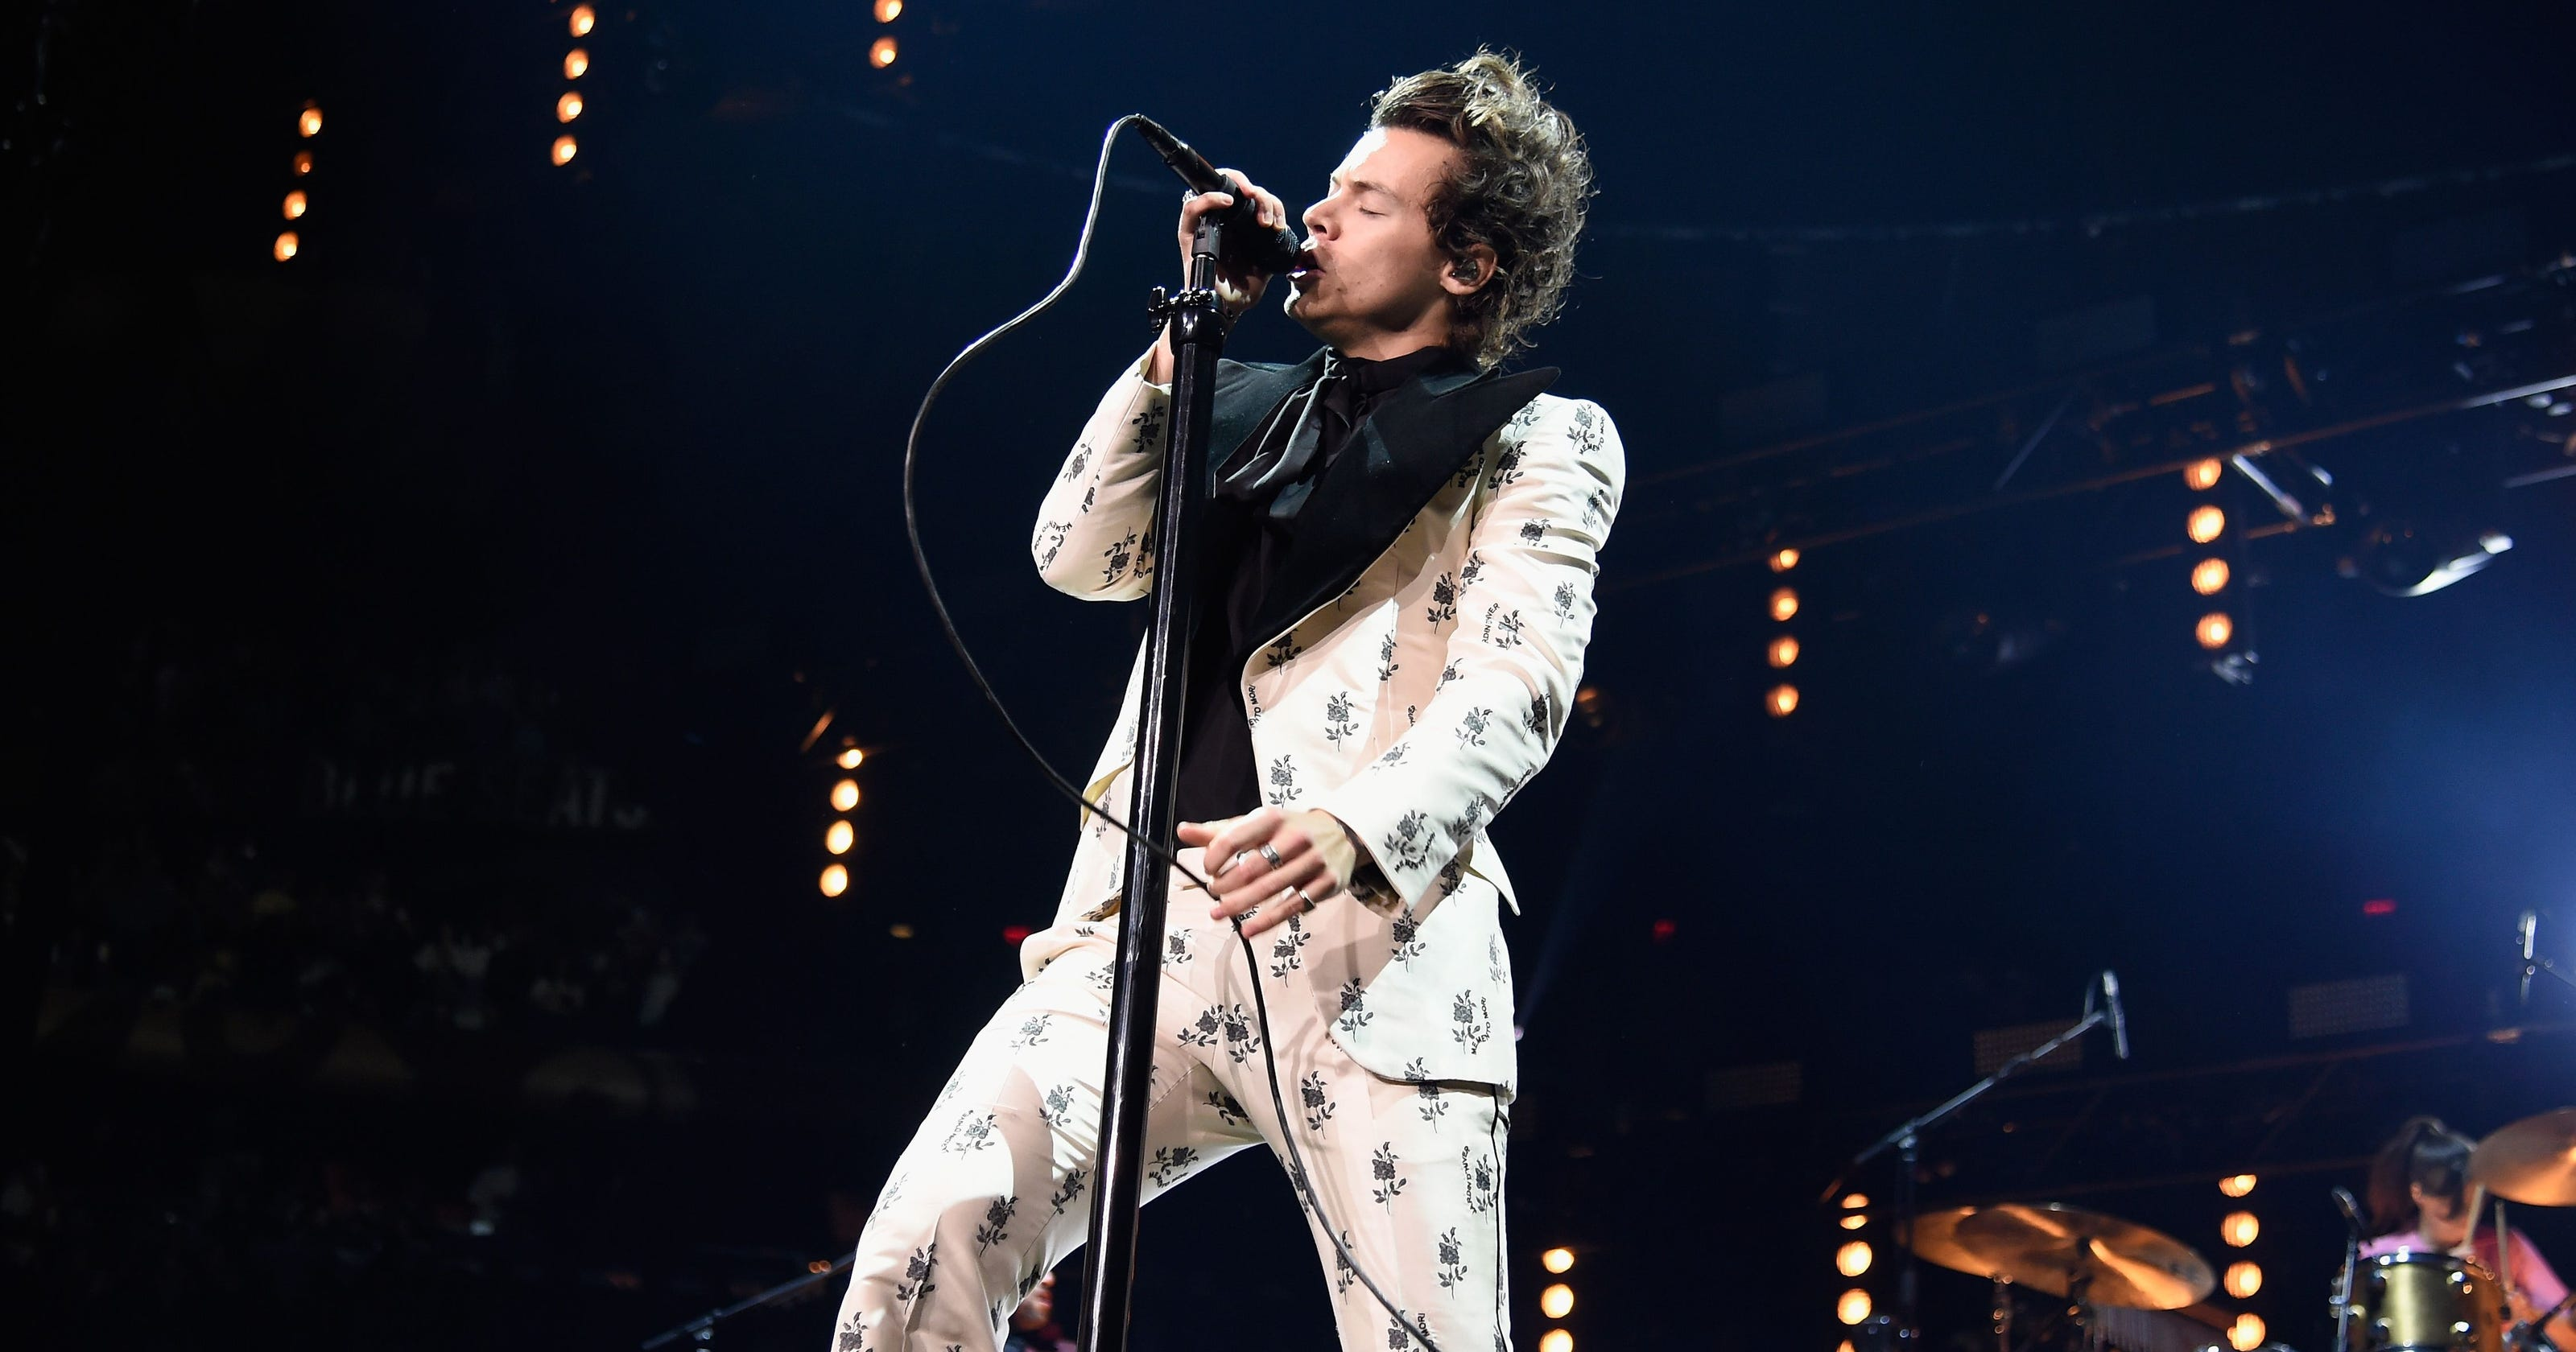 Harry Styles drops sign of new release: Is it actually happening?